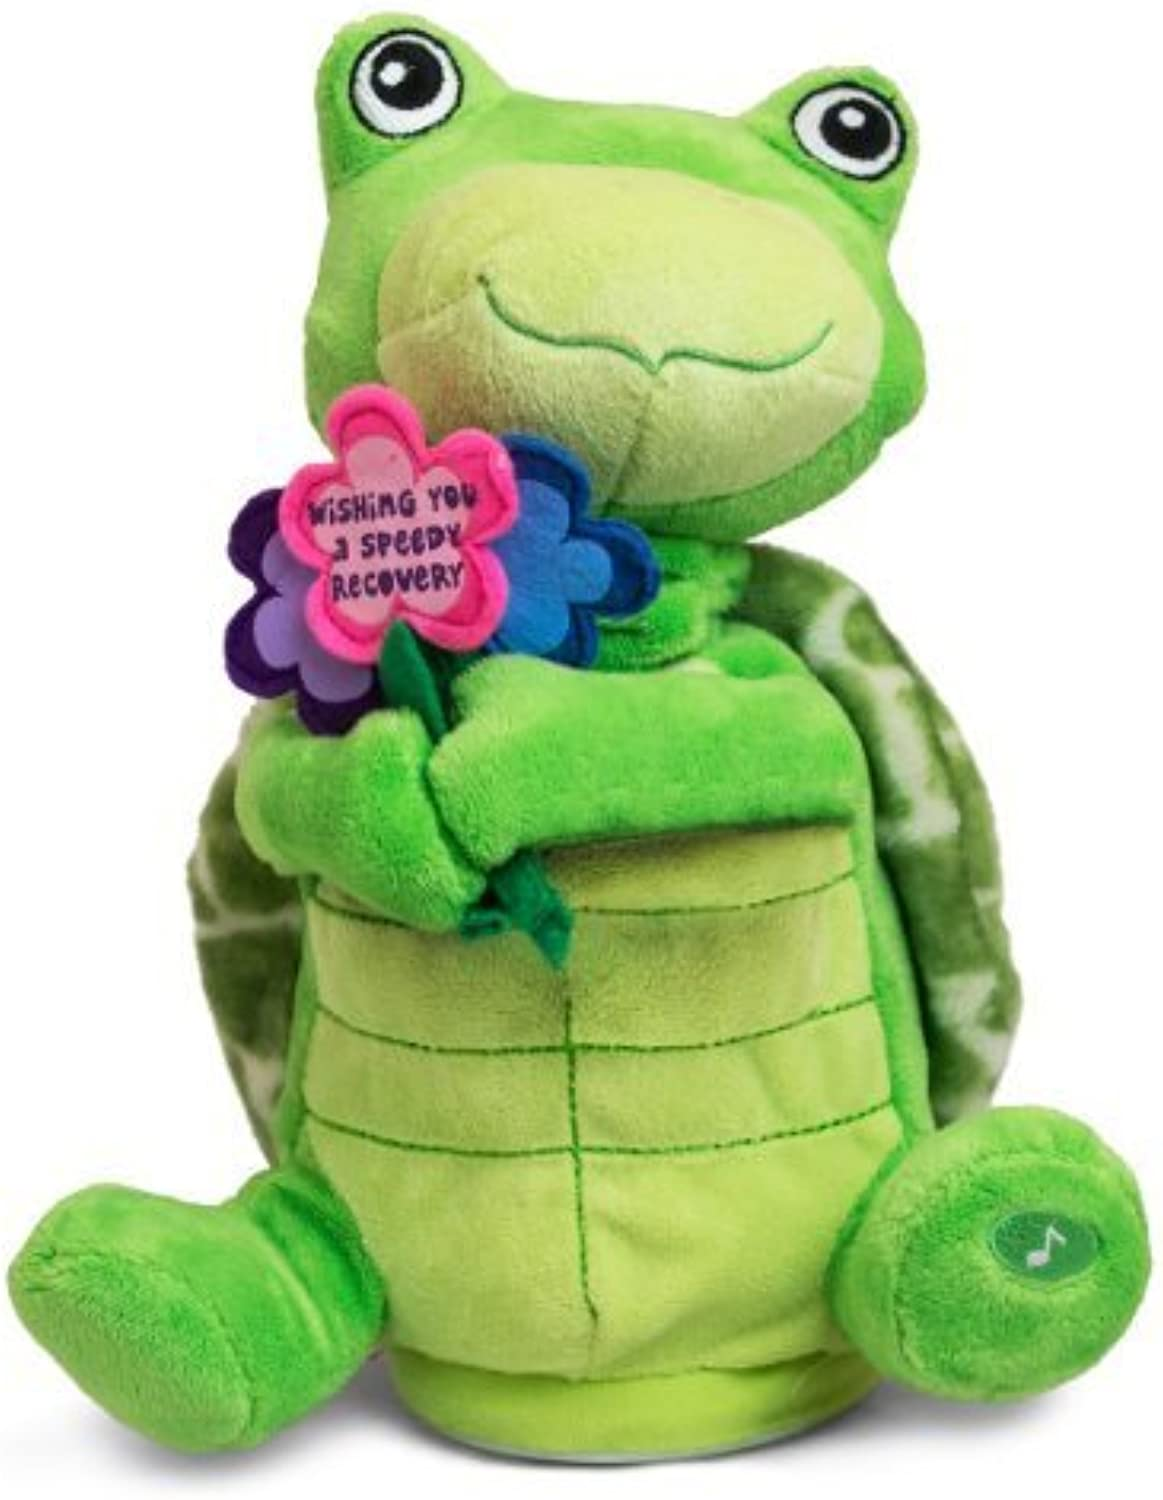 The Petting Zoo Animated Stuffed Turtle,  Wishing You a Speedy Recovery  by The Petting Zoo